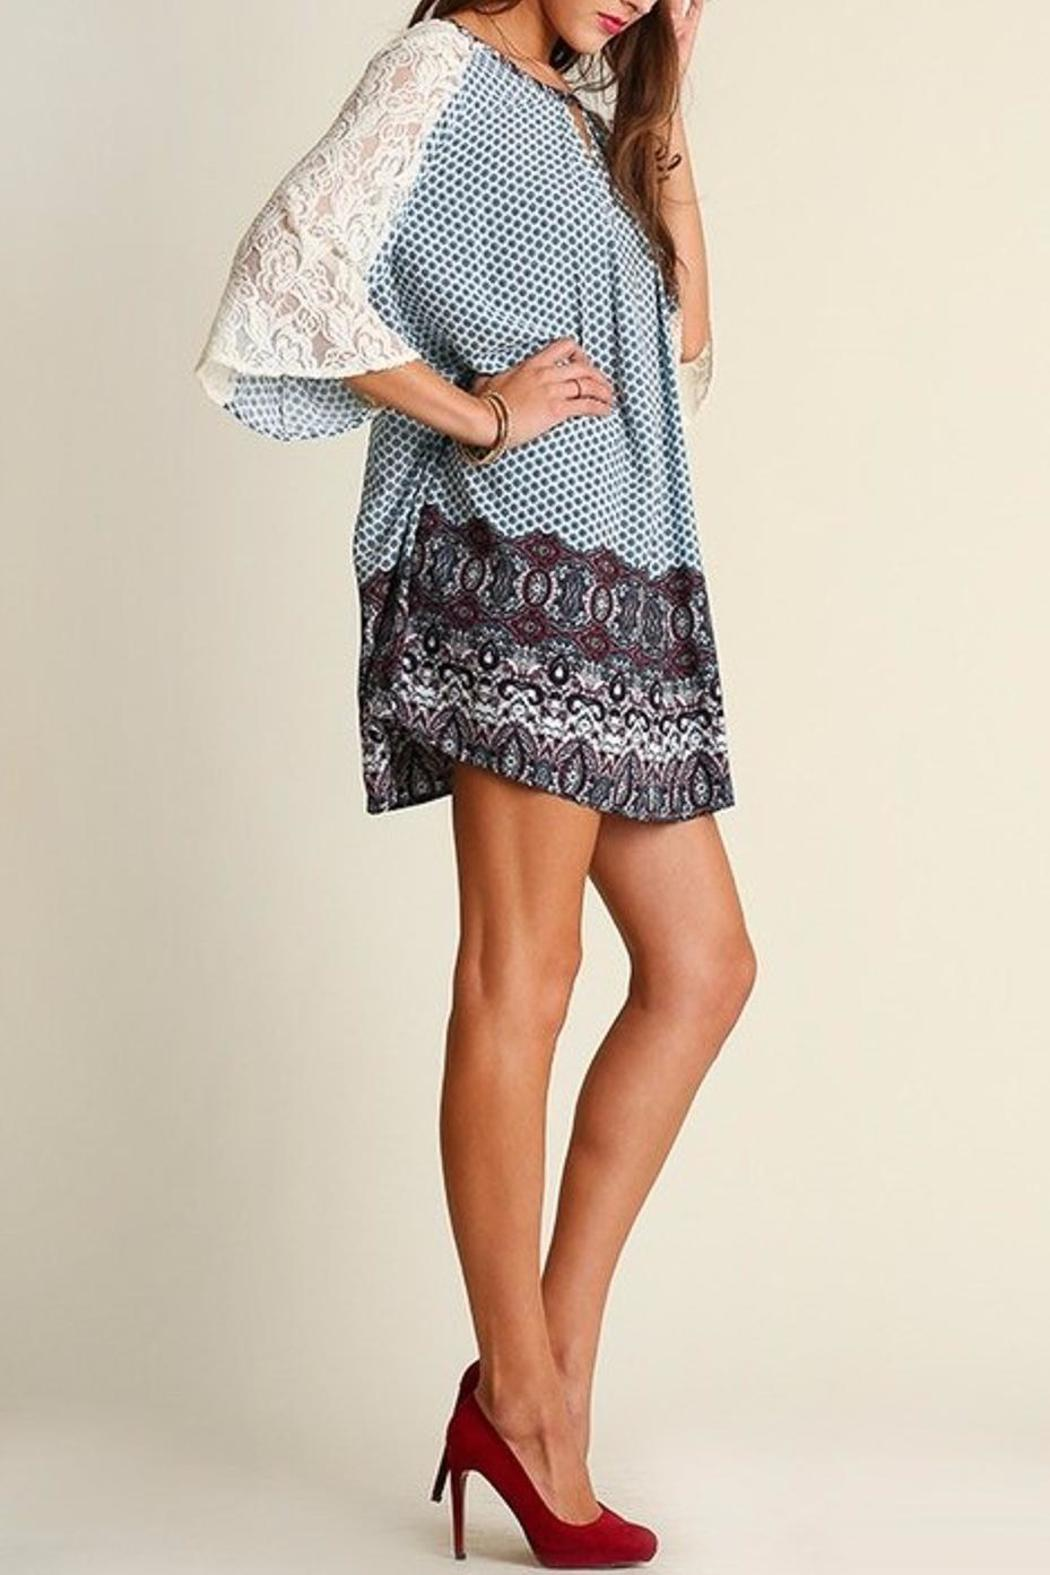 People Outfitter Camilla Blue Dress - Front Cropped Image